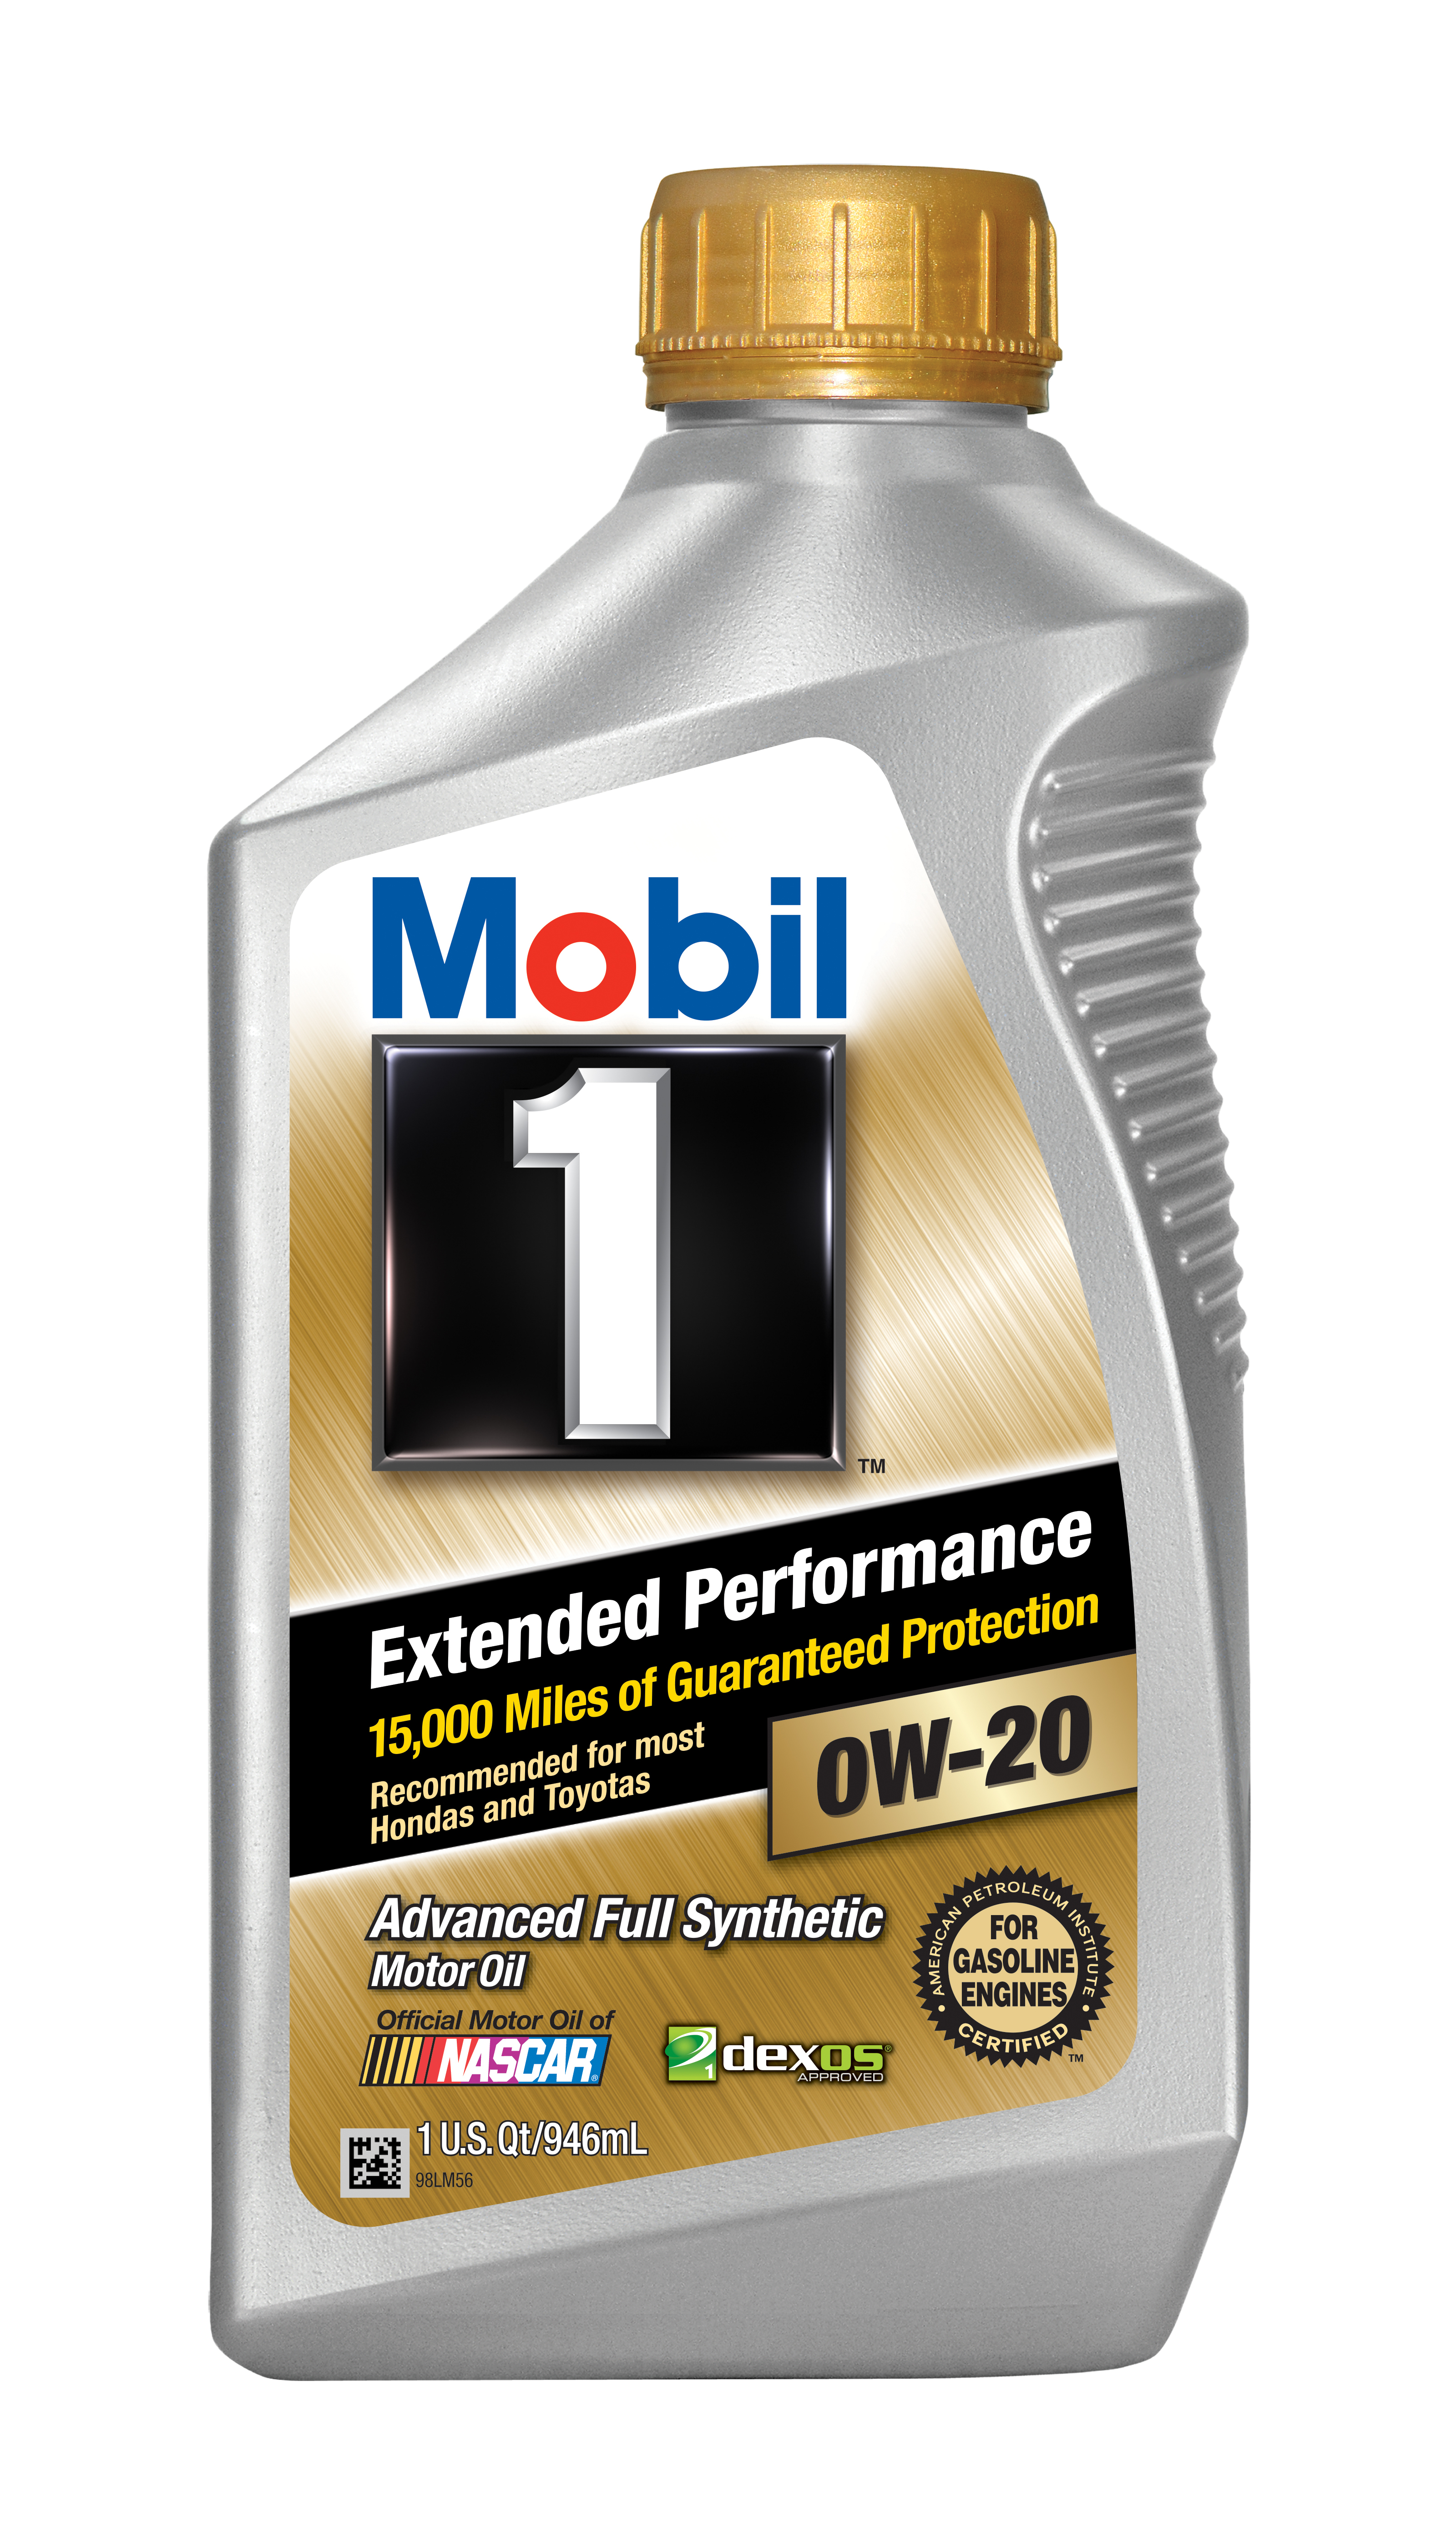 exxonmobil introduces sae 0w 20 viscosity motor oil to